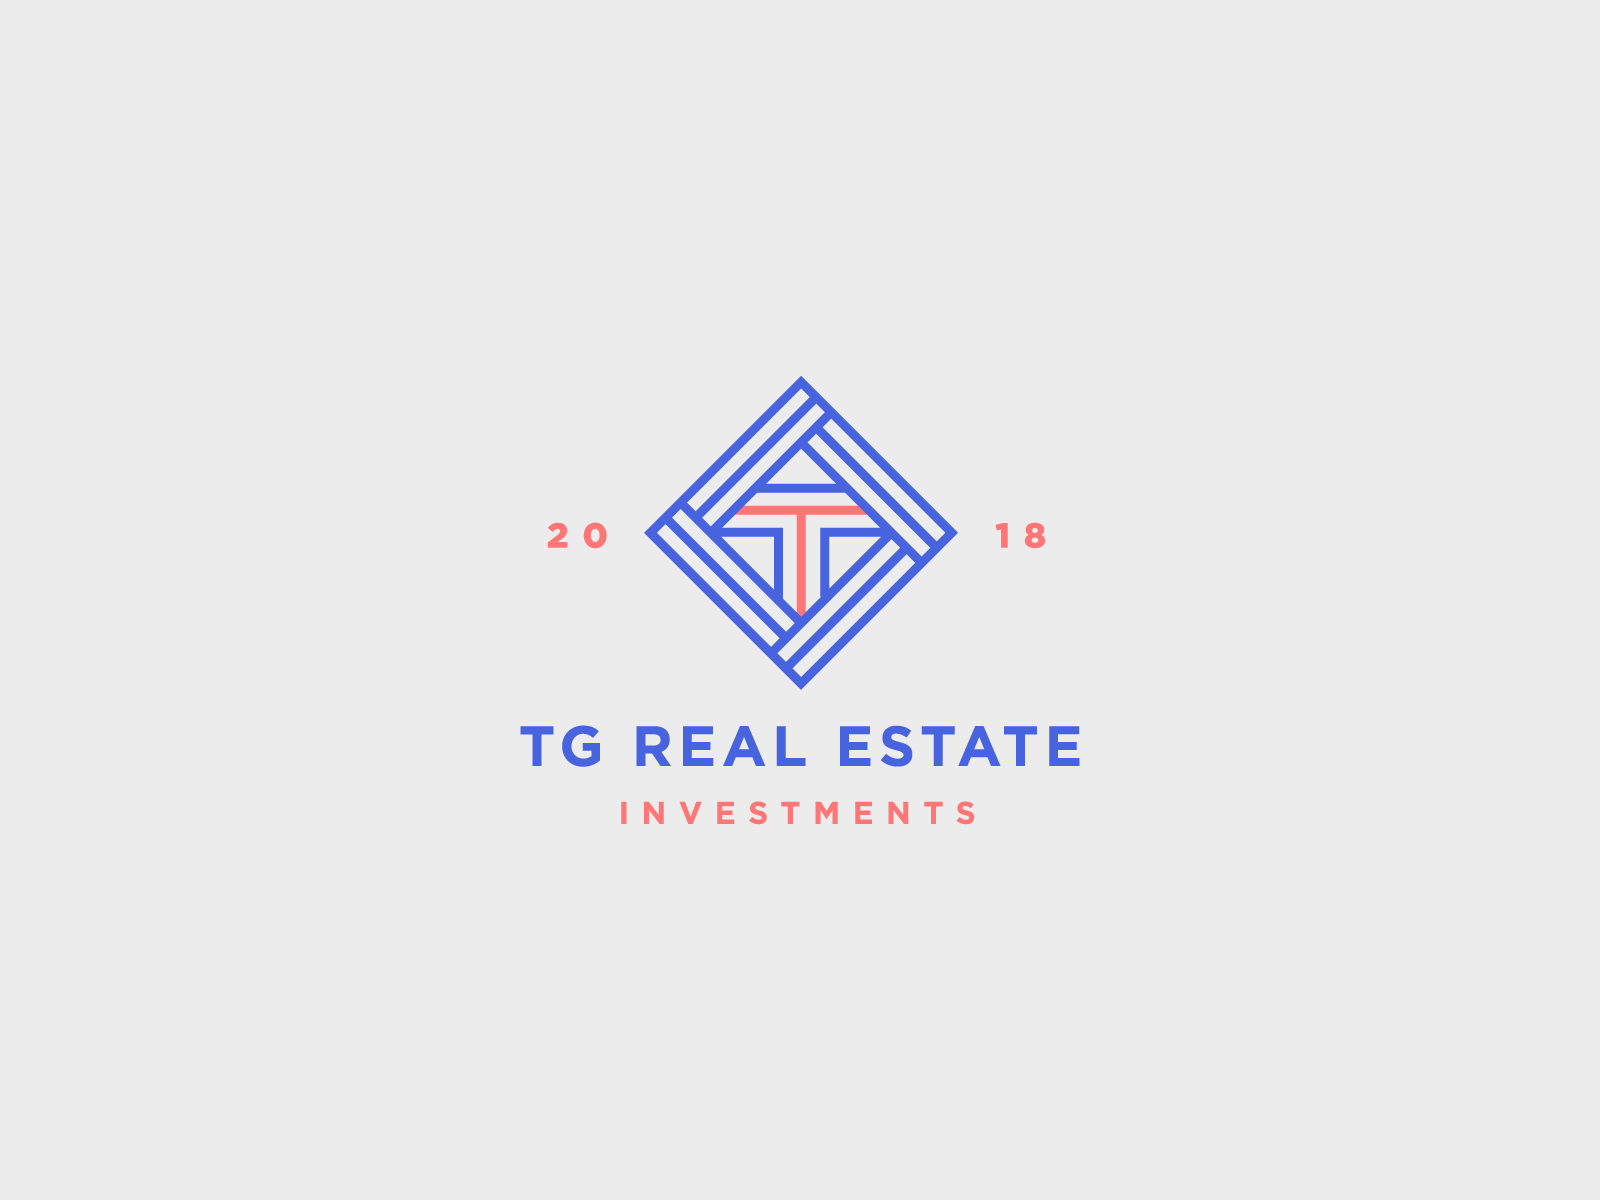 Tg investments logo 01